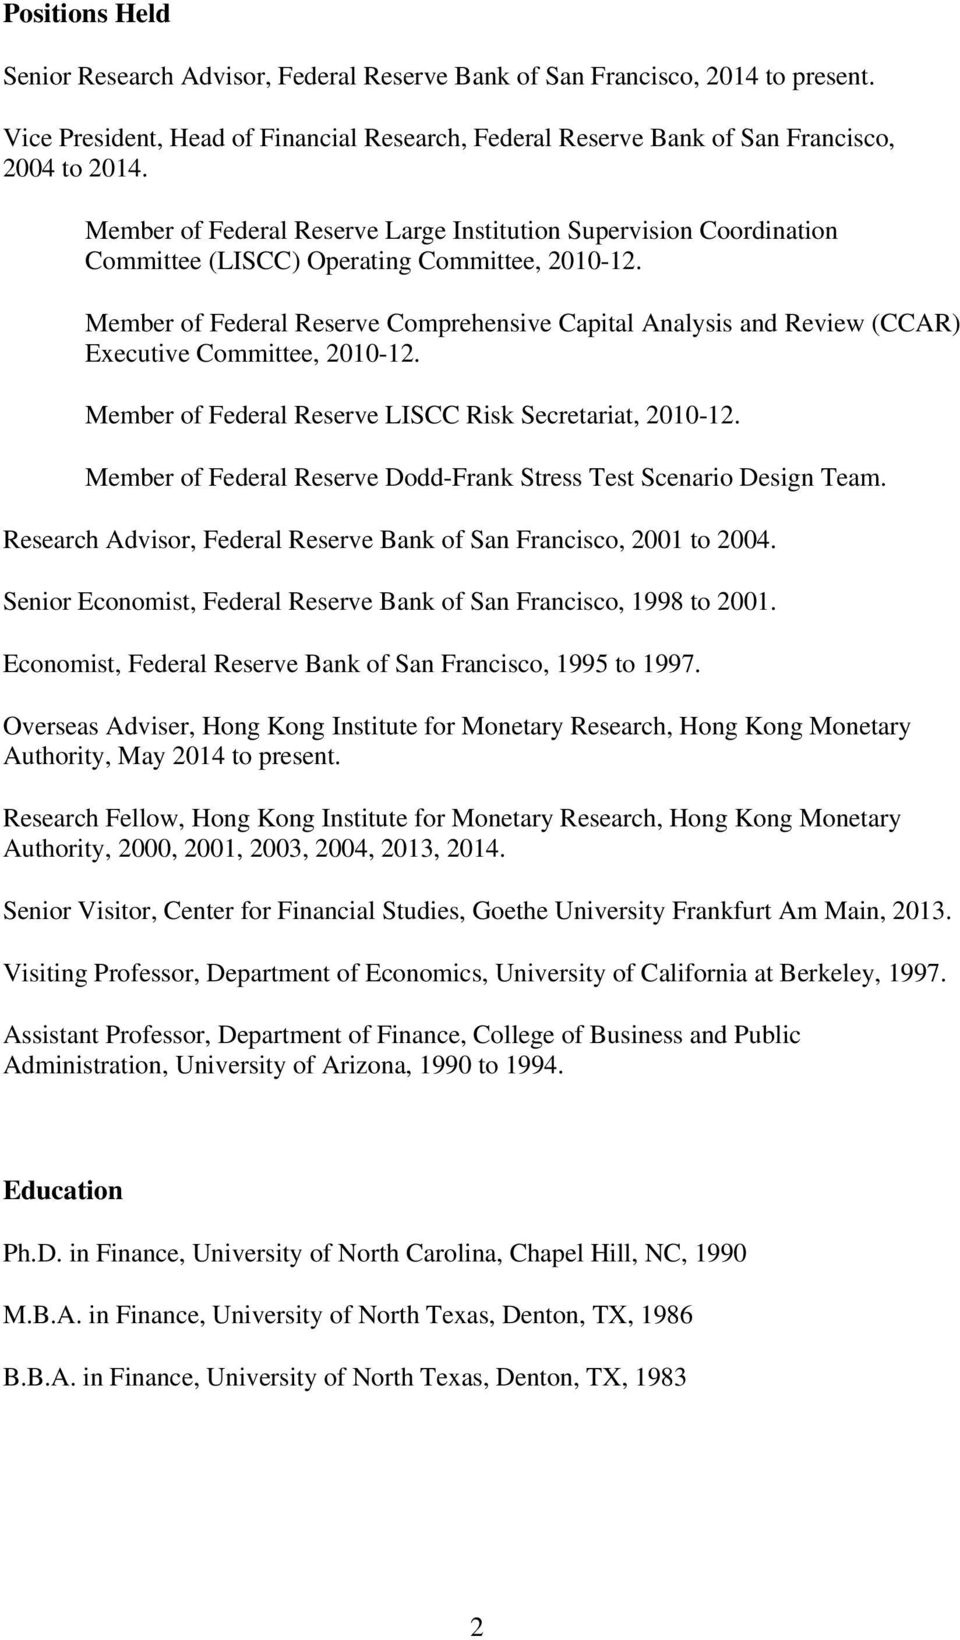 Member of Federal Reserve Comprehensive Capital Analysis and Review (CCAR) Executive Committee, 2010-12. Member of Federal Reserve LISCC Risk Secretariat, 2010-12.